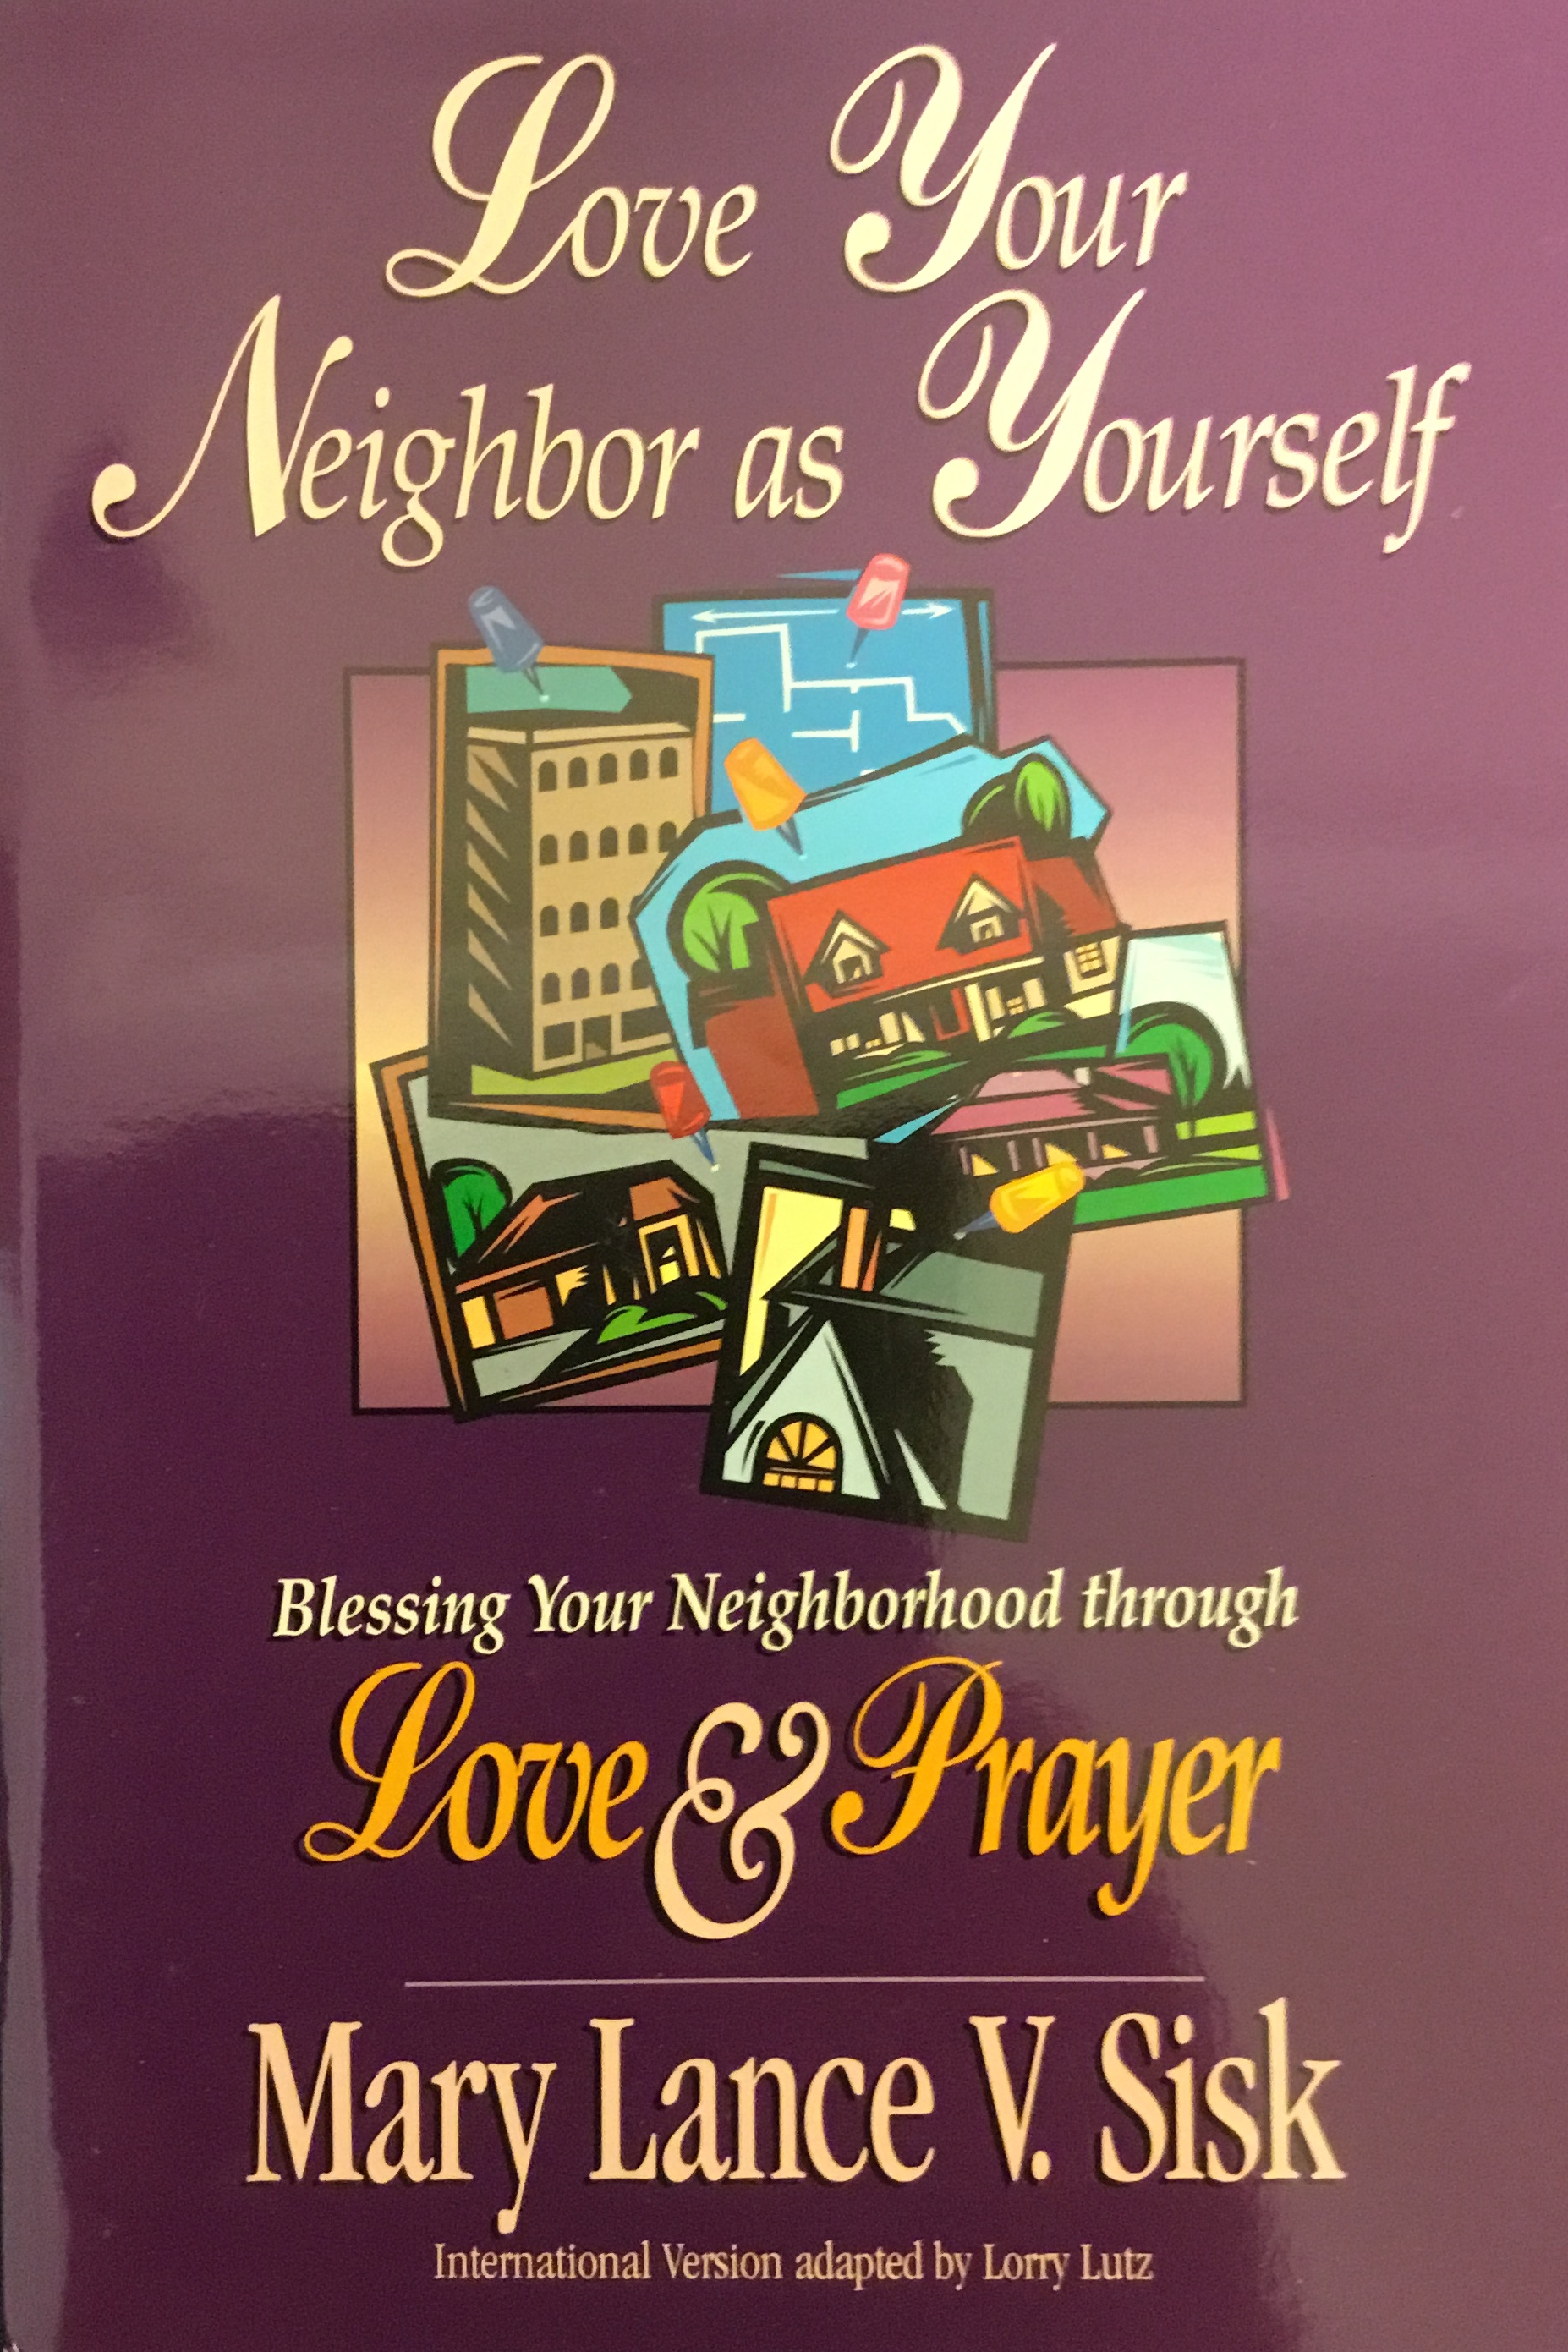 Love your neighbor as yourself: blessing your neighborhood through love and prayer